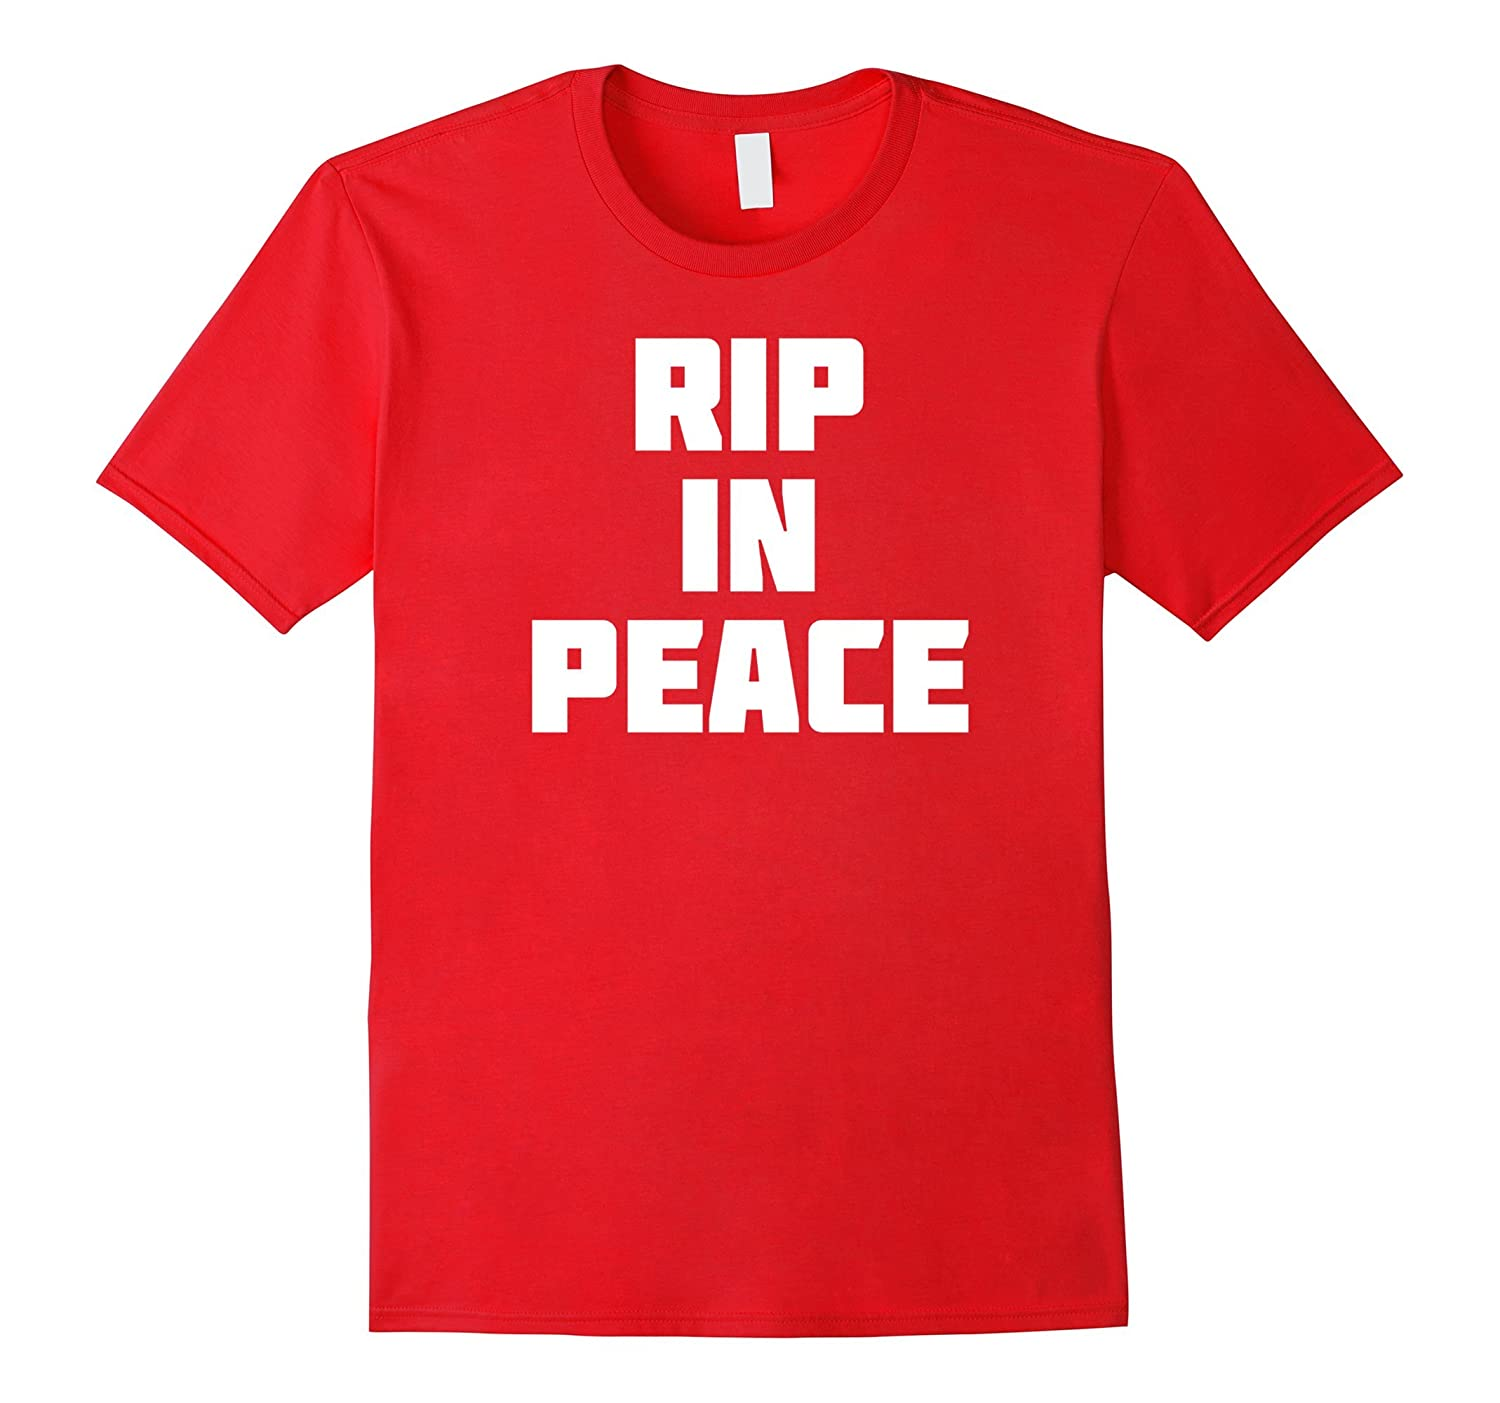 RIP In Peace  Funny Sarcastic Novelty T-Shirt-Samdetee